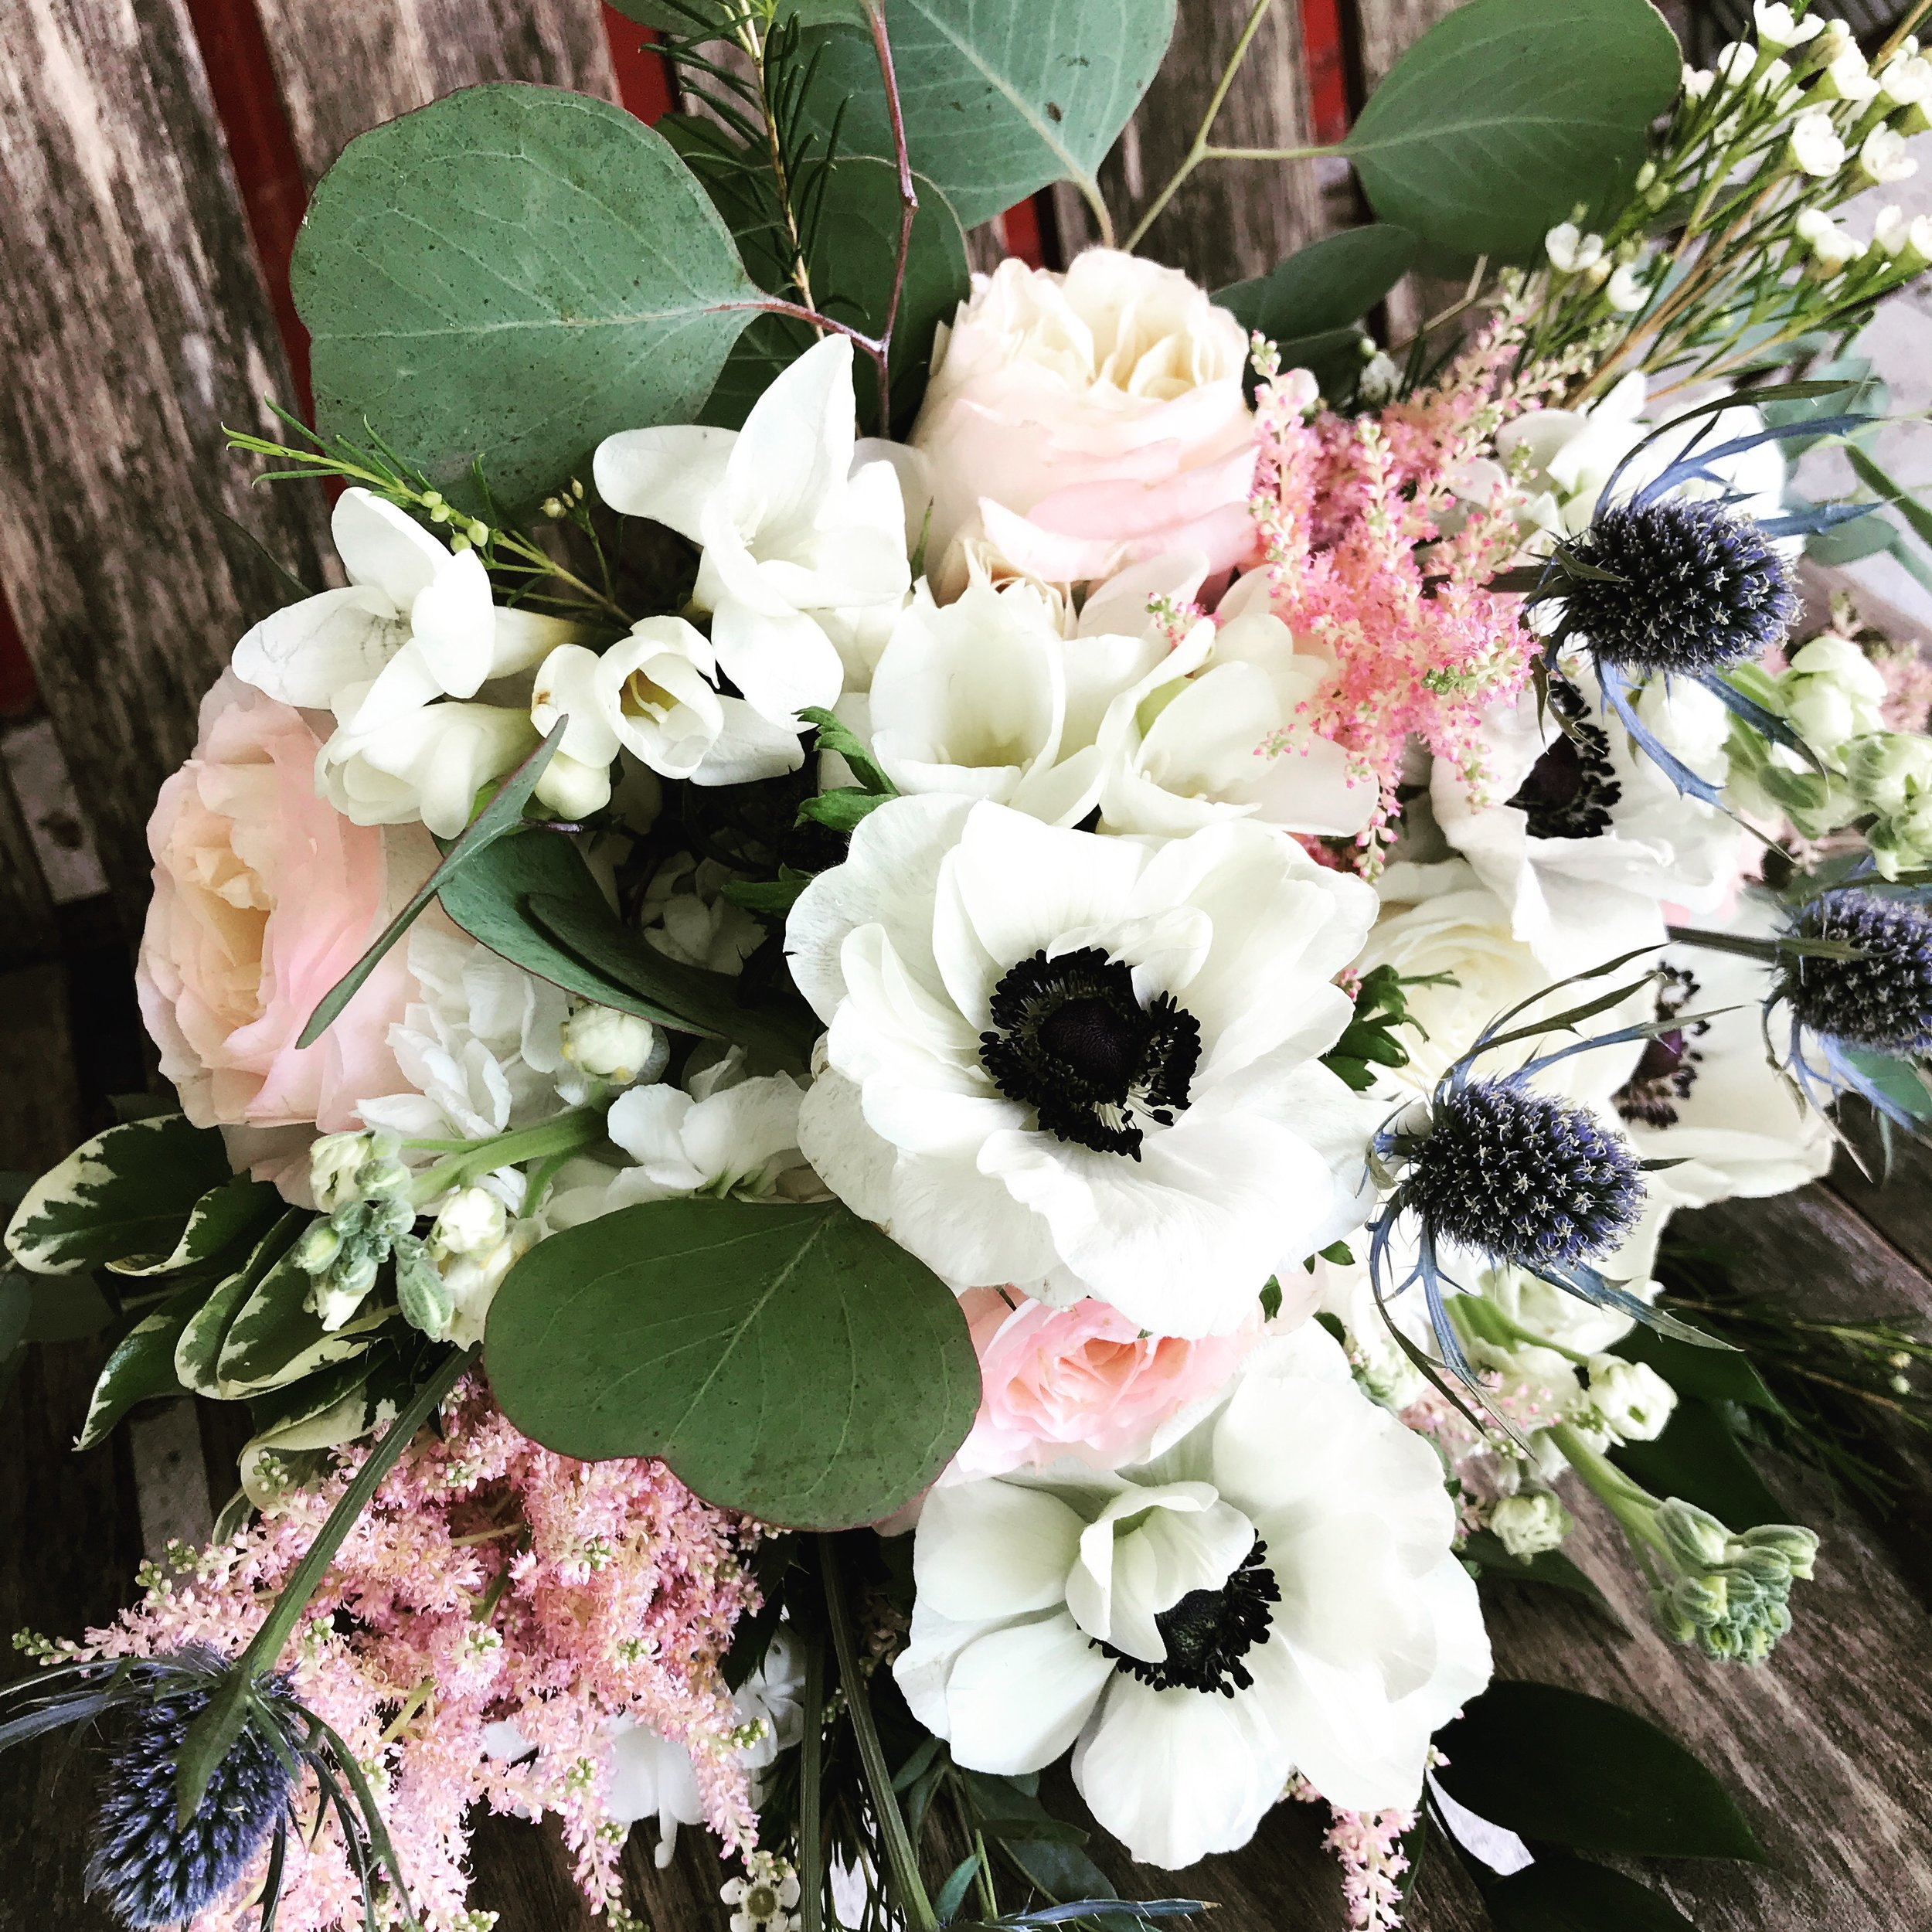 White anemones with blush roses and blue thistle